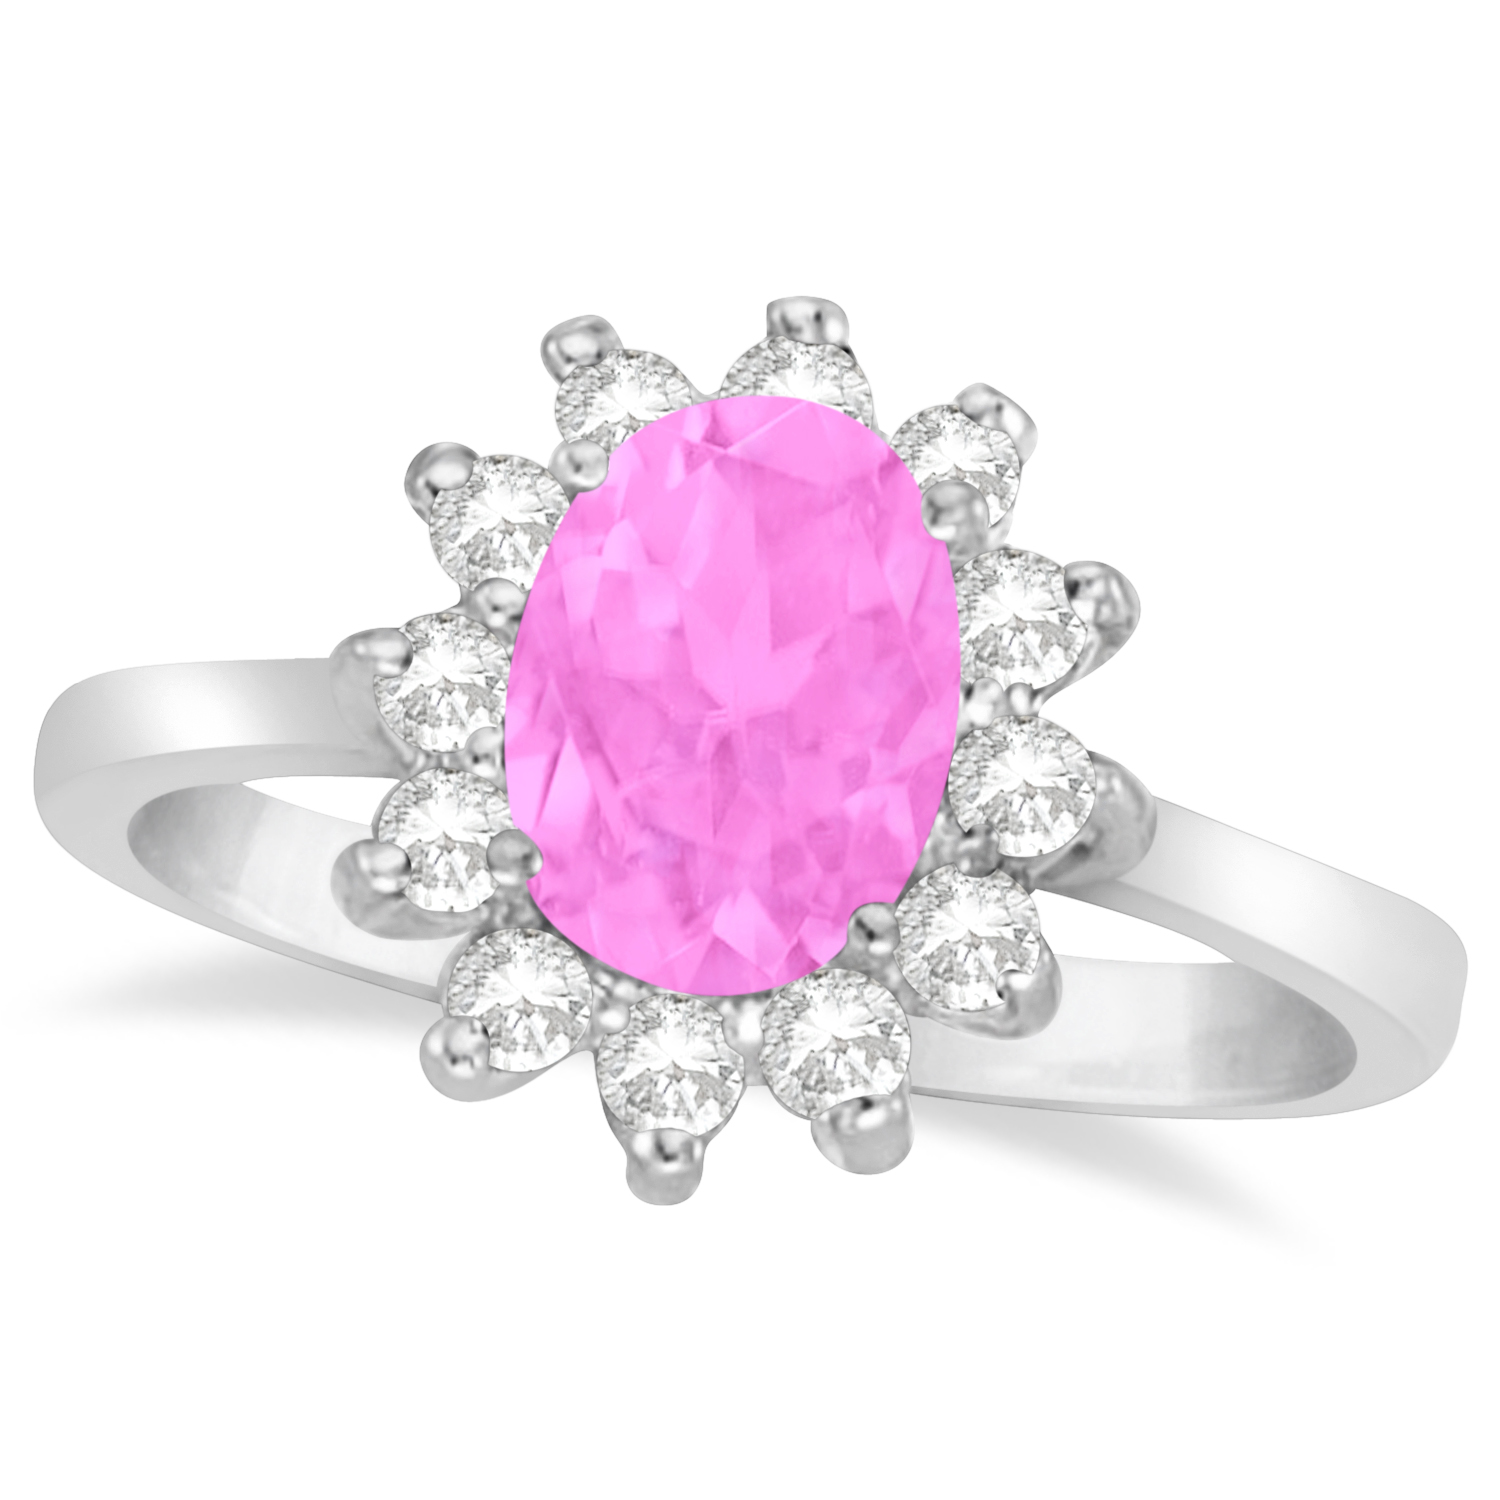 Lady Diana Oval Pink Sapphire & Diamond Ring 14k White Gold 1.50 ct ...